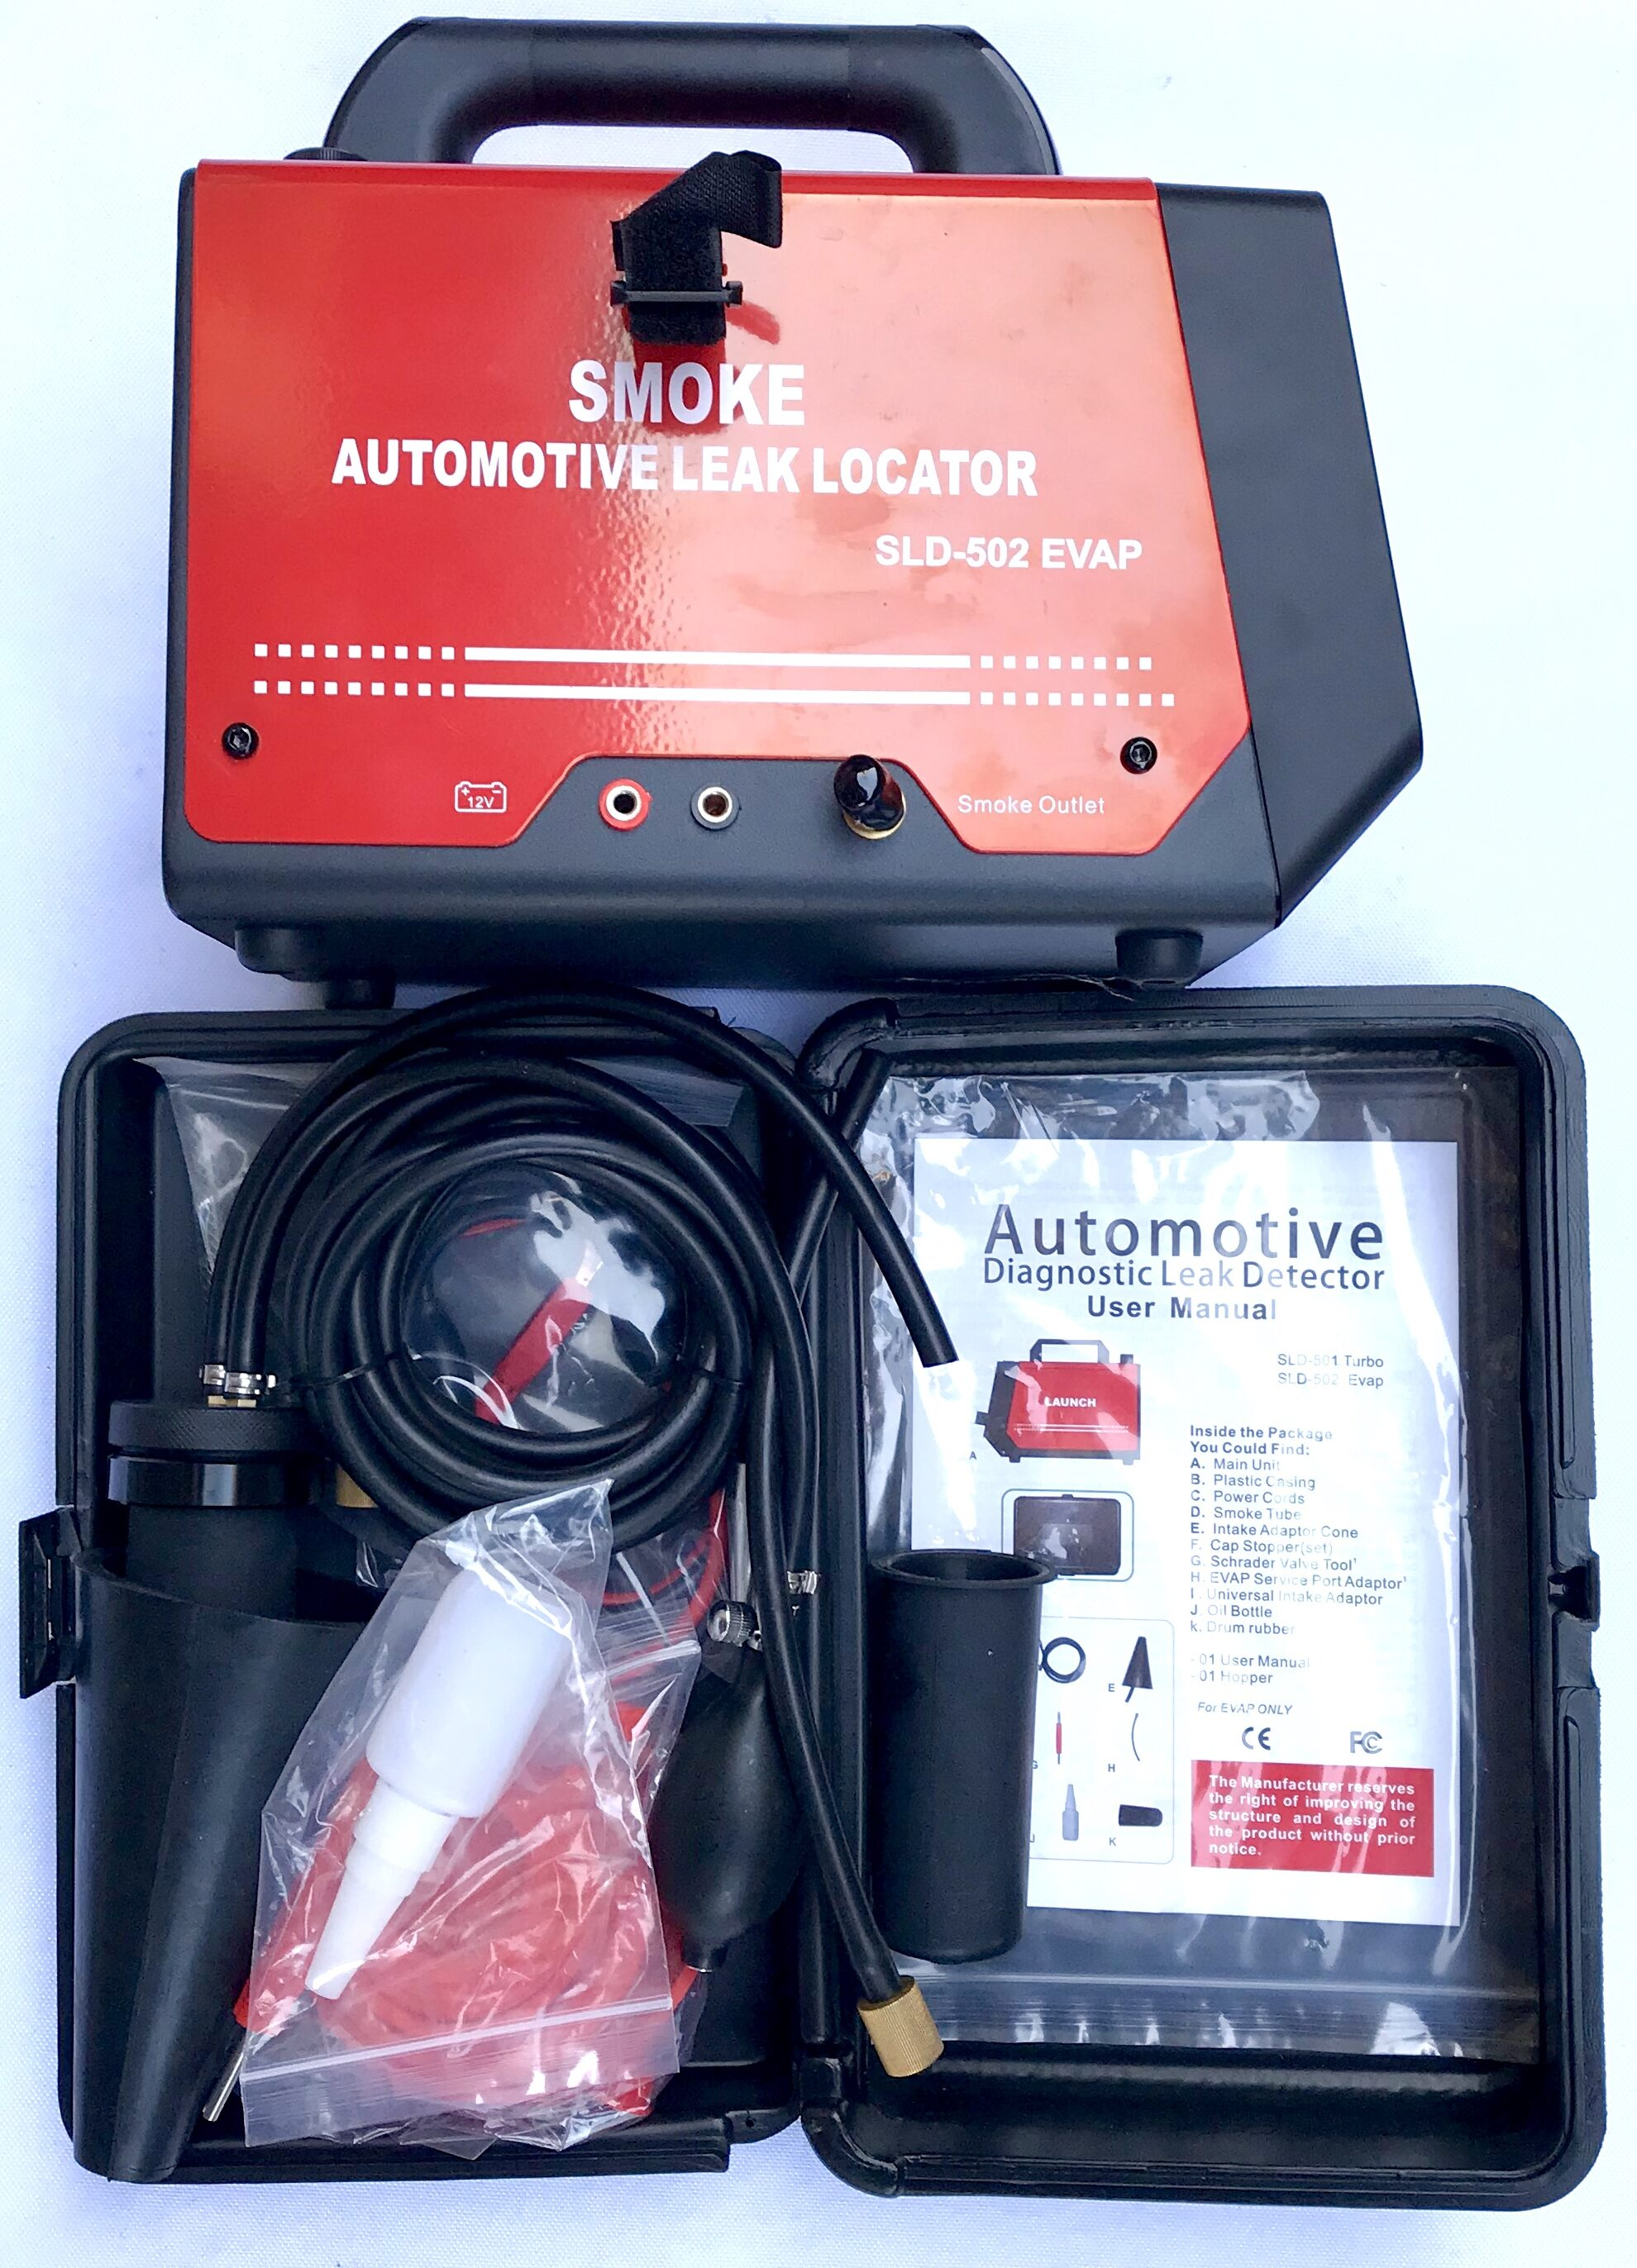 Launch SLD-502 Smoke Automotive Leak Locator (EVAP)